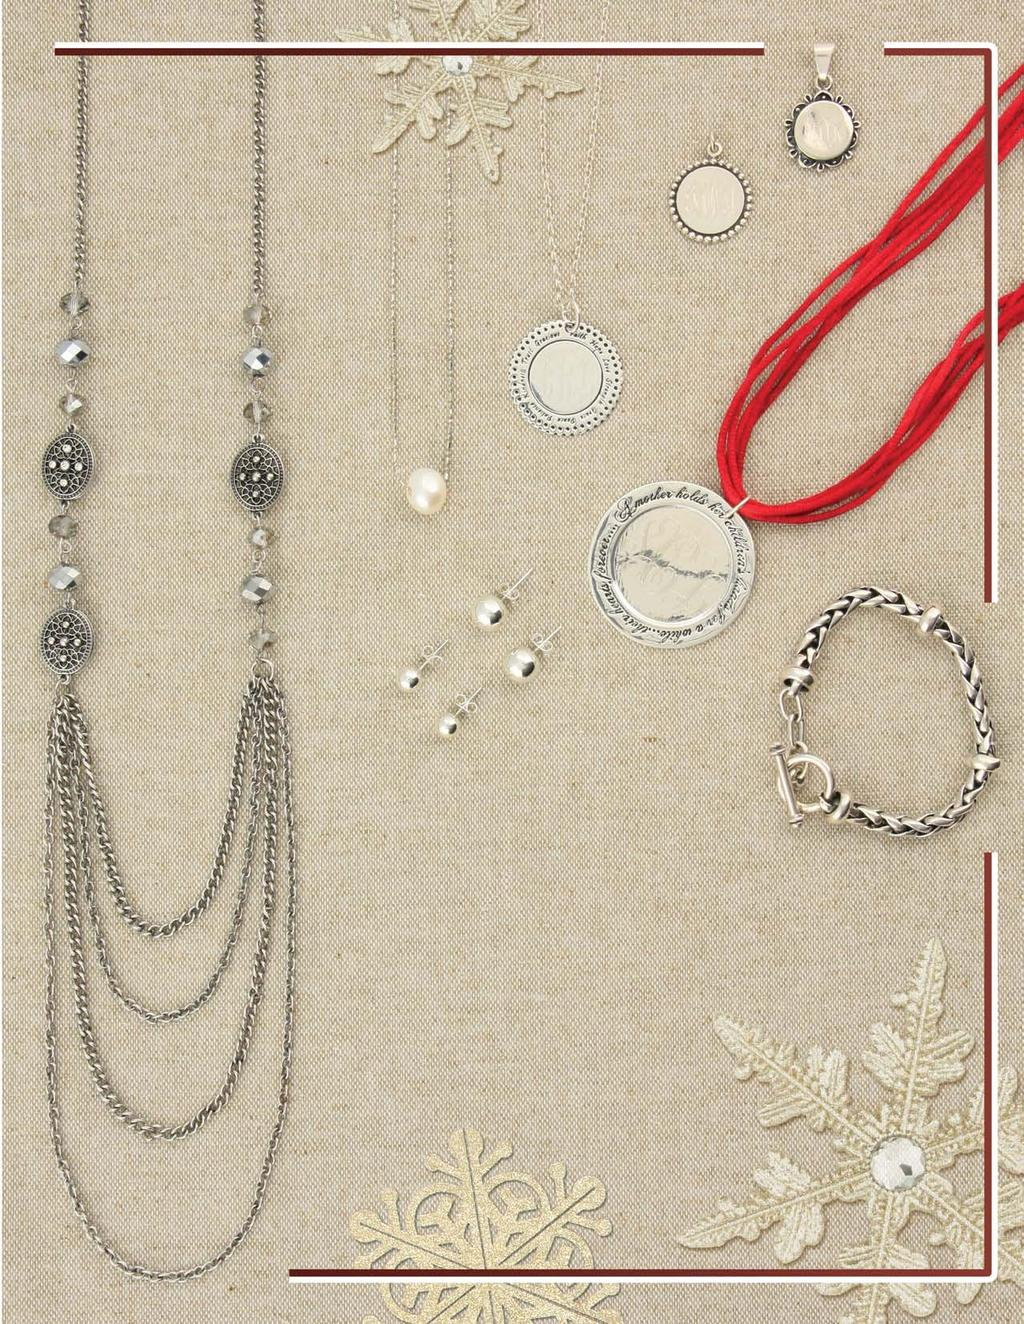 e. d. a. b. c. h. g. f. i. Classic Styles a. JN0516 $29 Vintage ovals accent necklace and earring set b. JN0481 $21 Single 10mm freshwater pearl on silver chain measuring 16 1/2 c.